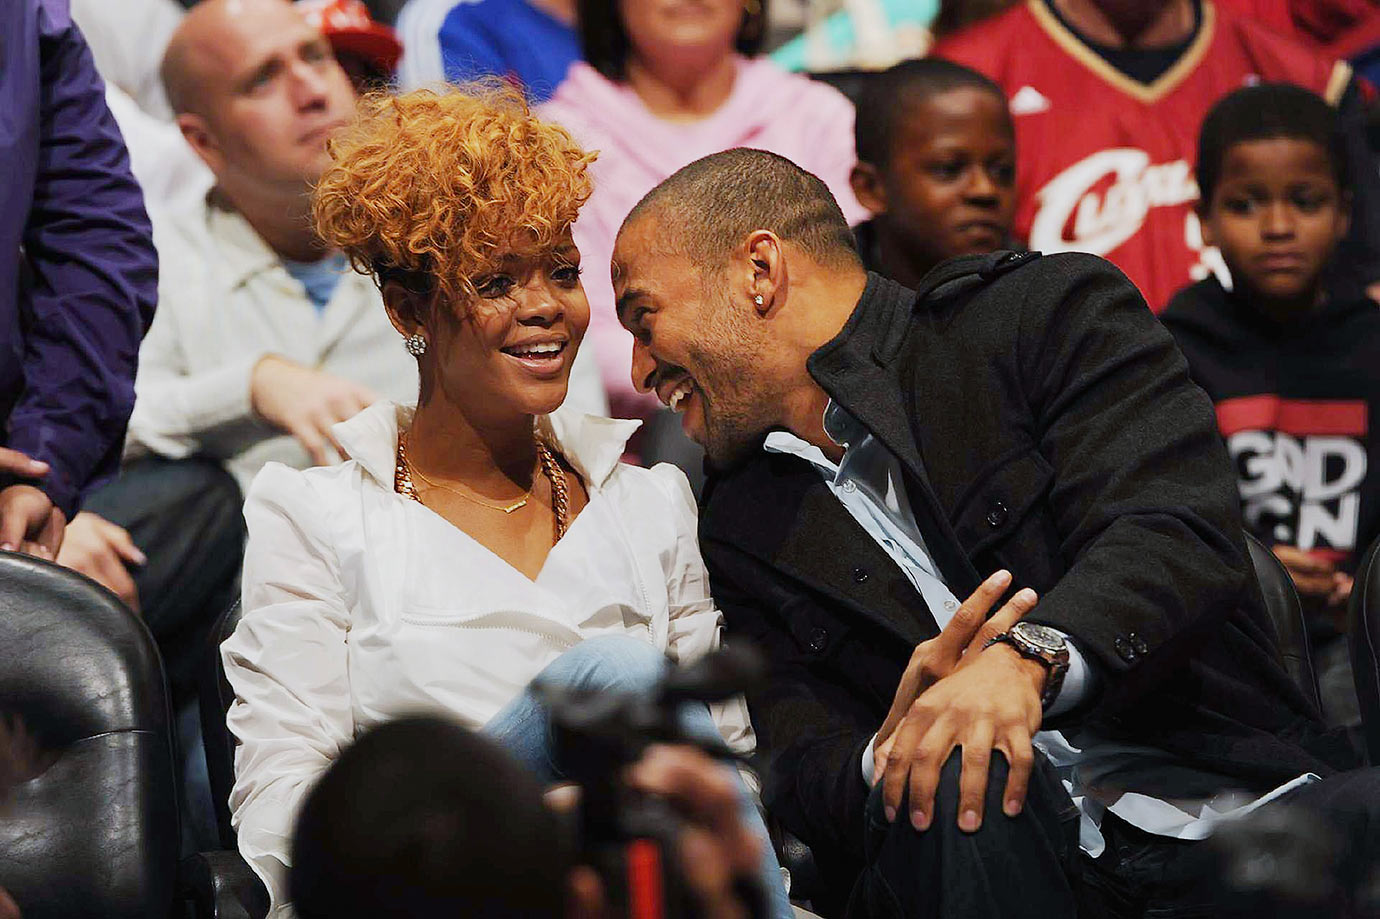 Rihanna and Matt Kemp share a laugh during the Los Angeles Clippers game against the Cleveland Cavaliers on Jan. 16, 2010 at Staples Center in Los Angeles.